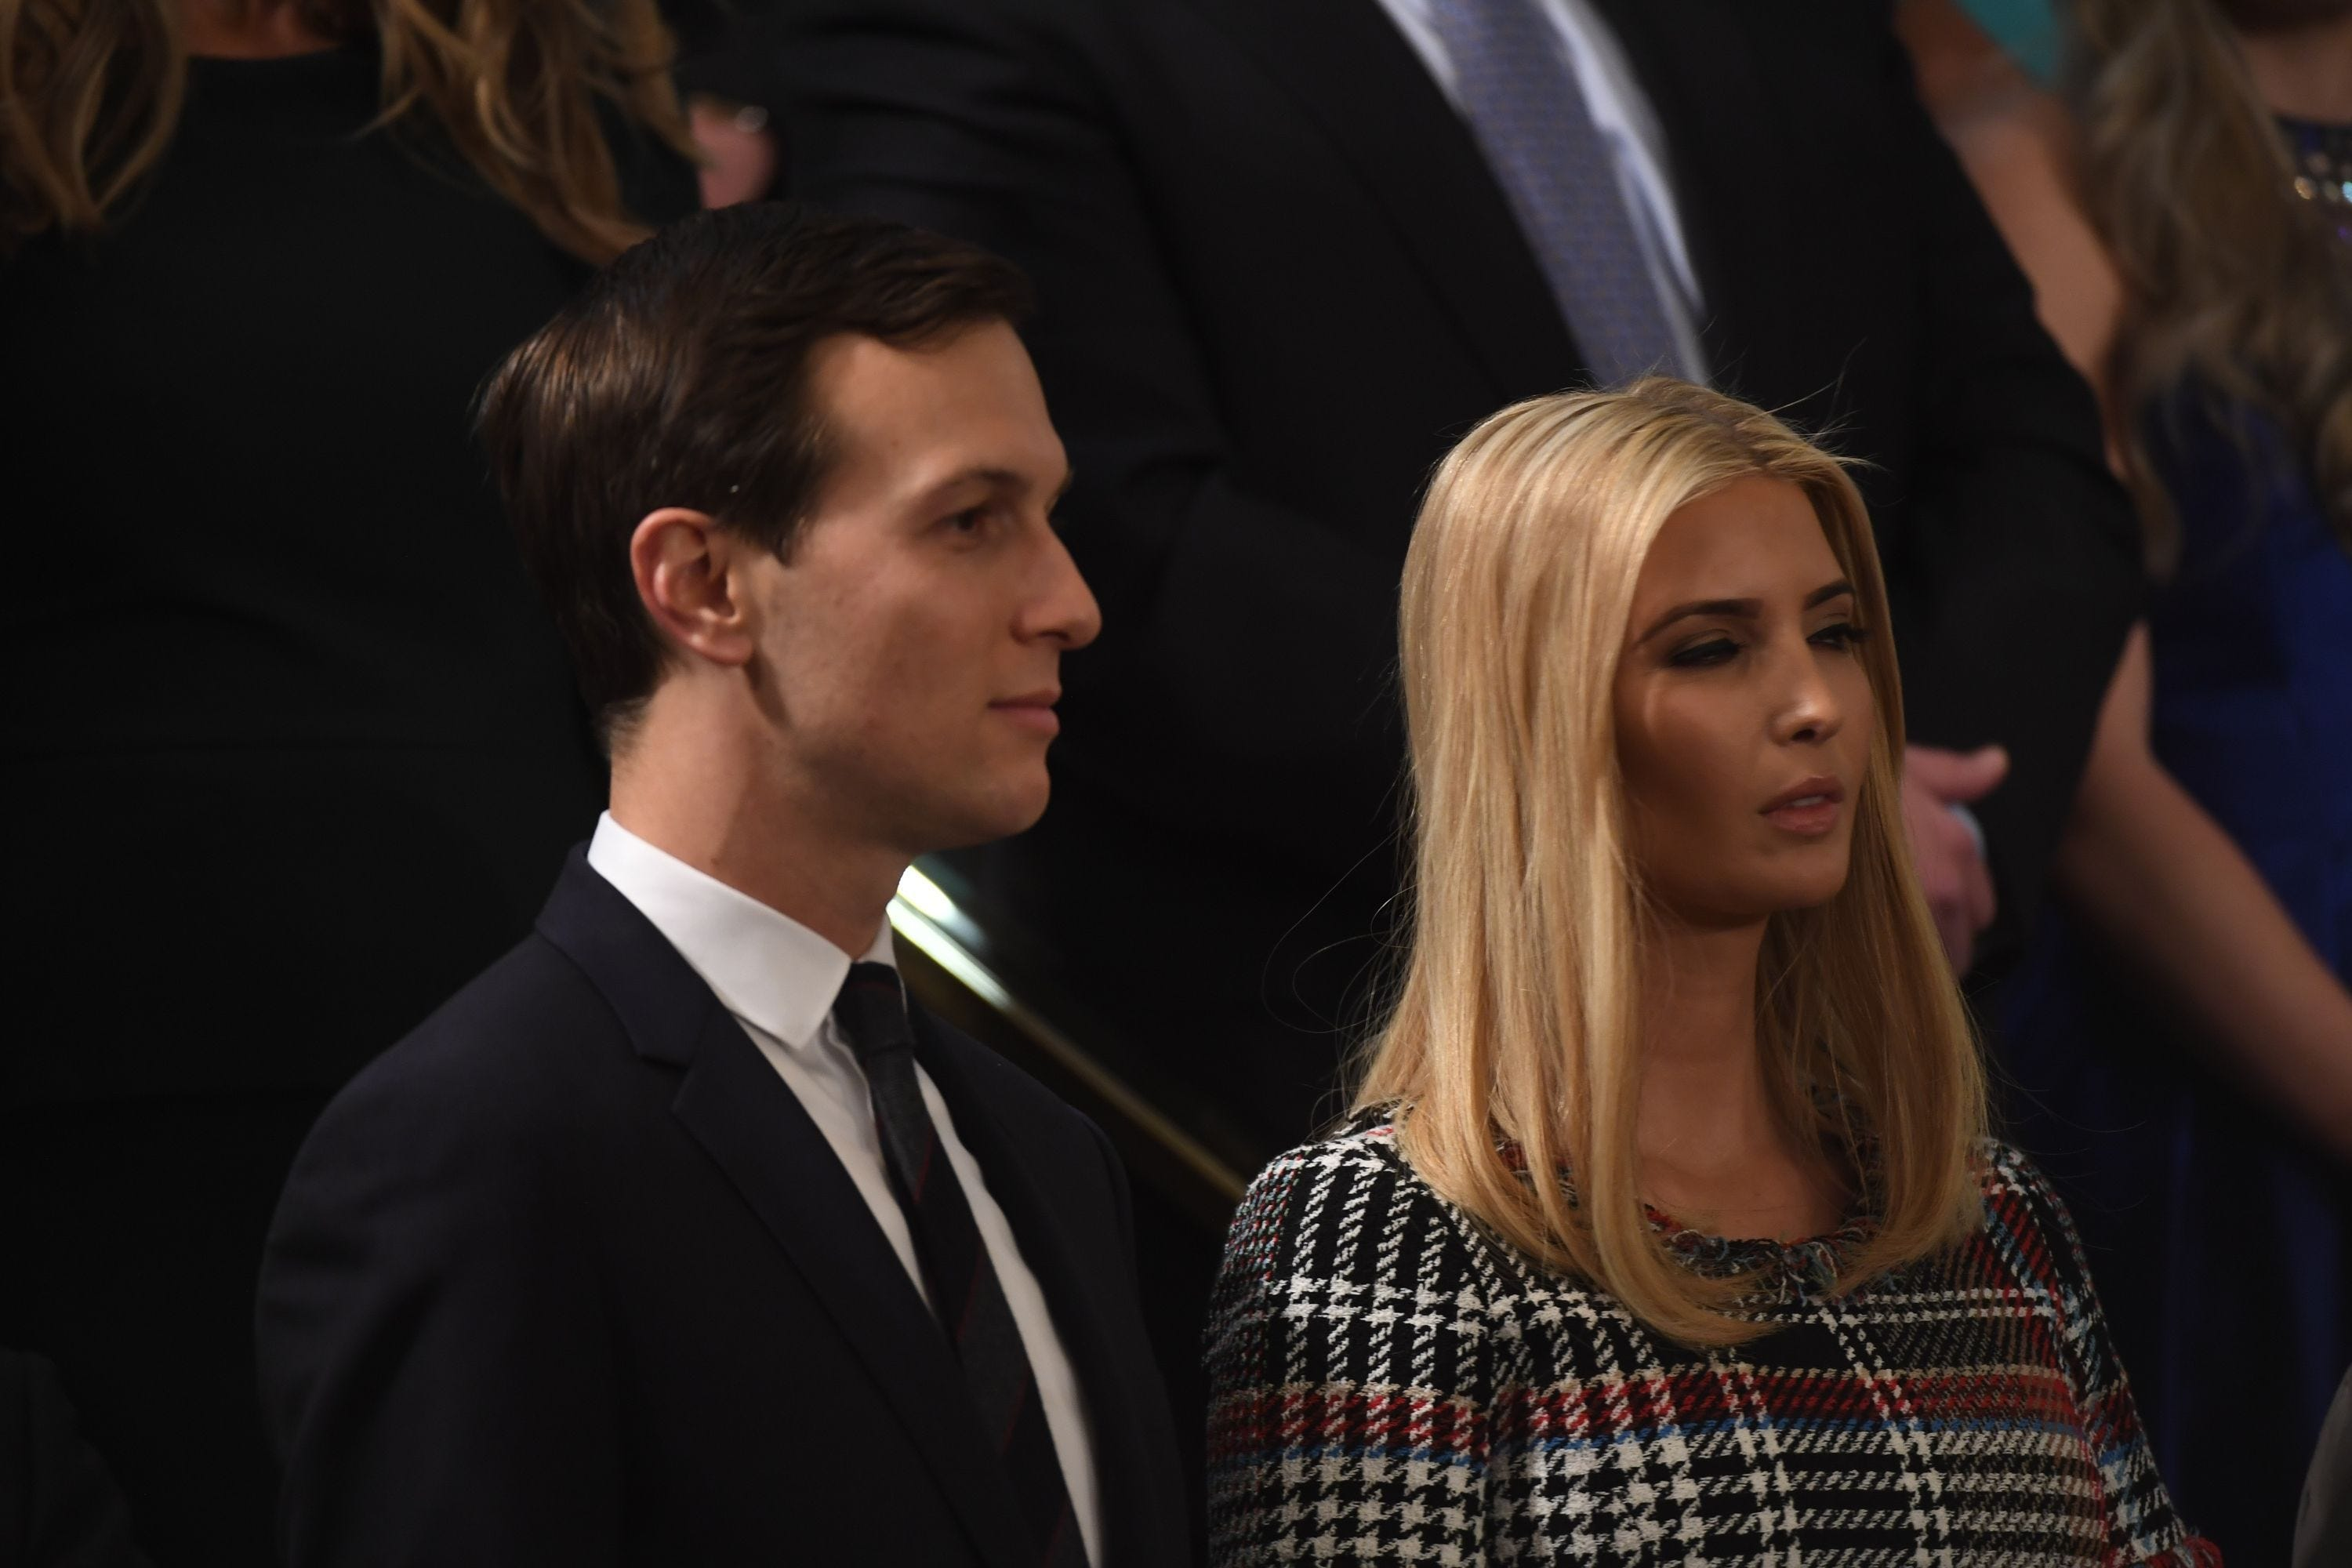 Report: Jared Kushner's White House security clearance hits new snag